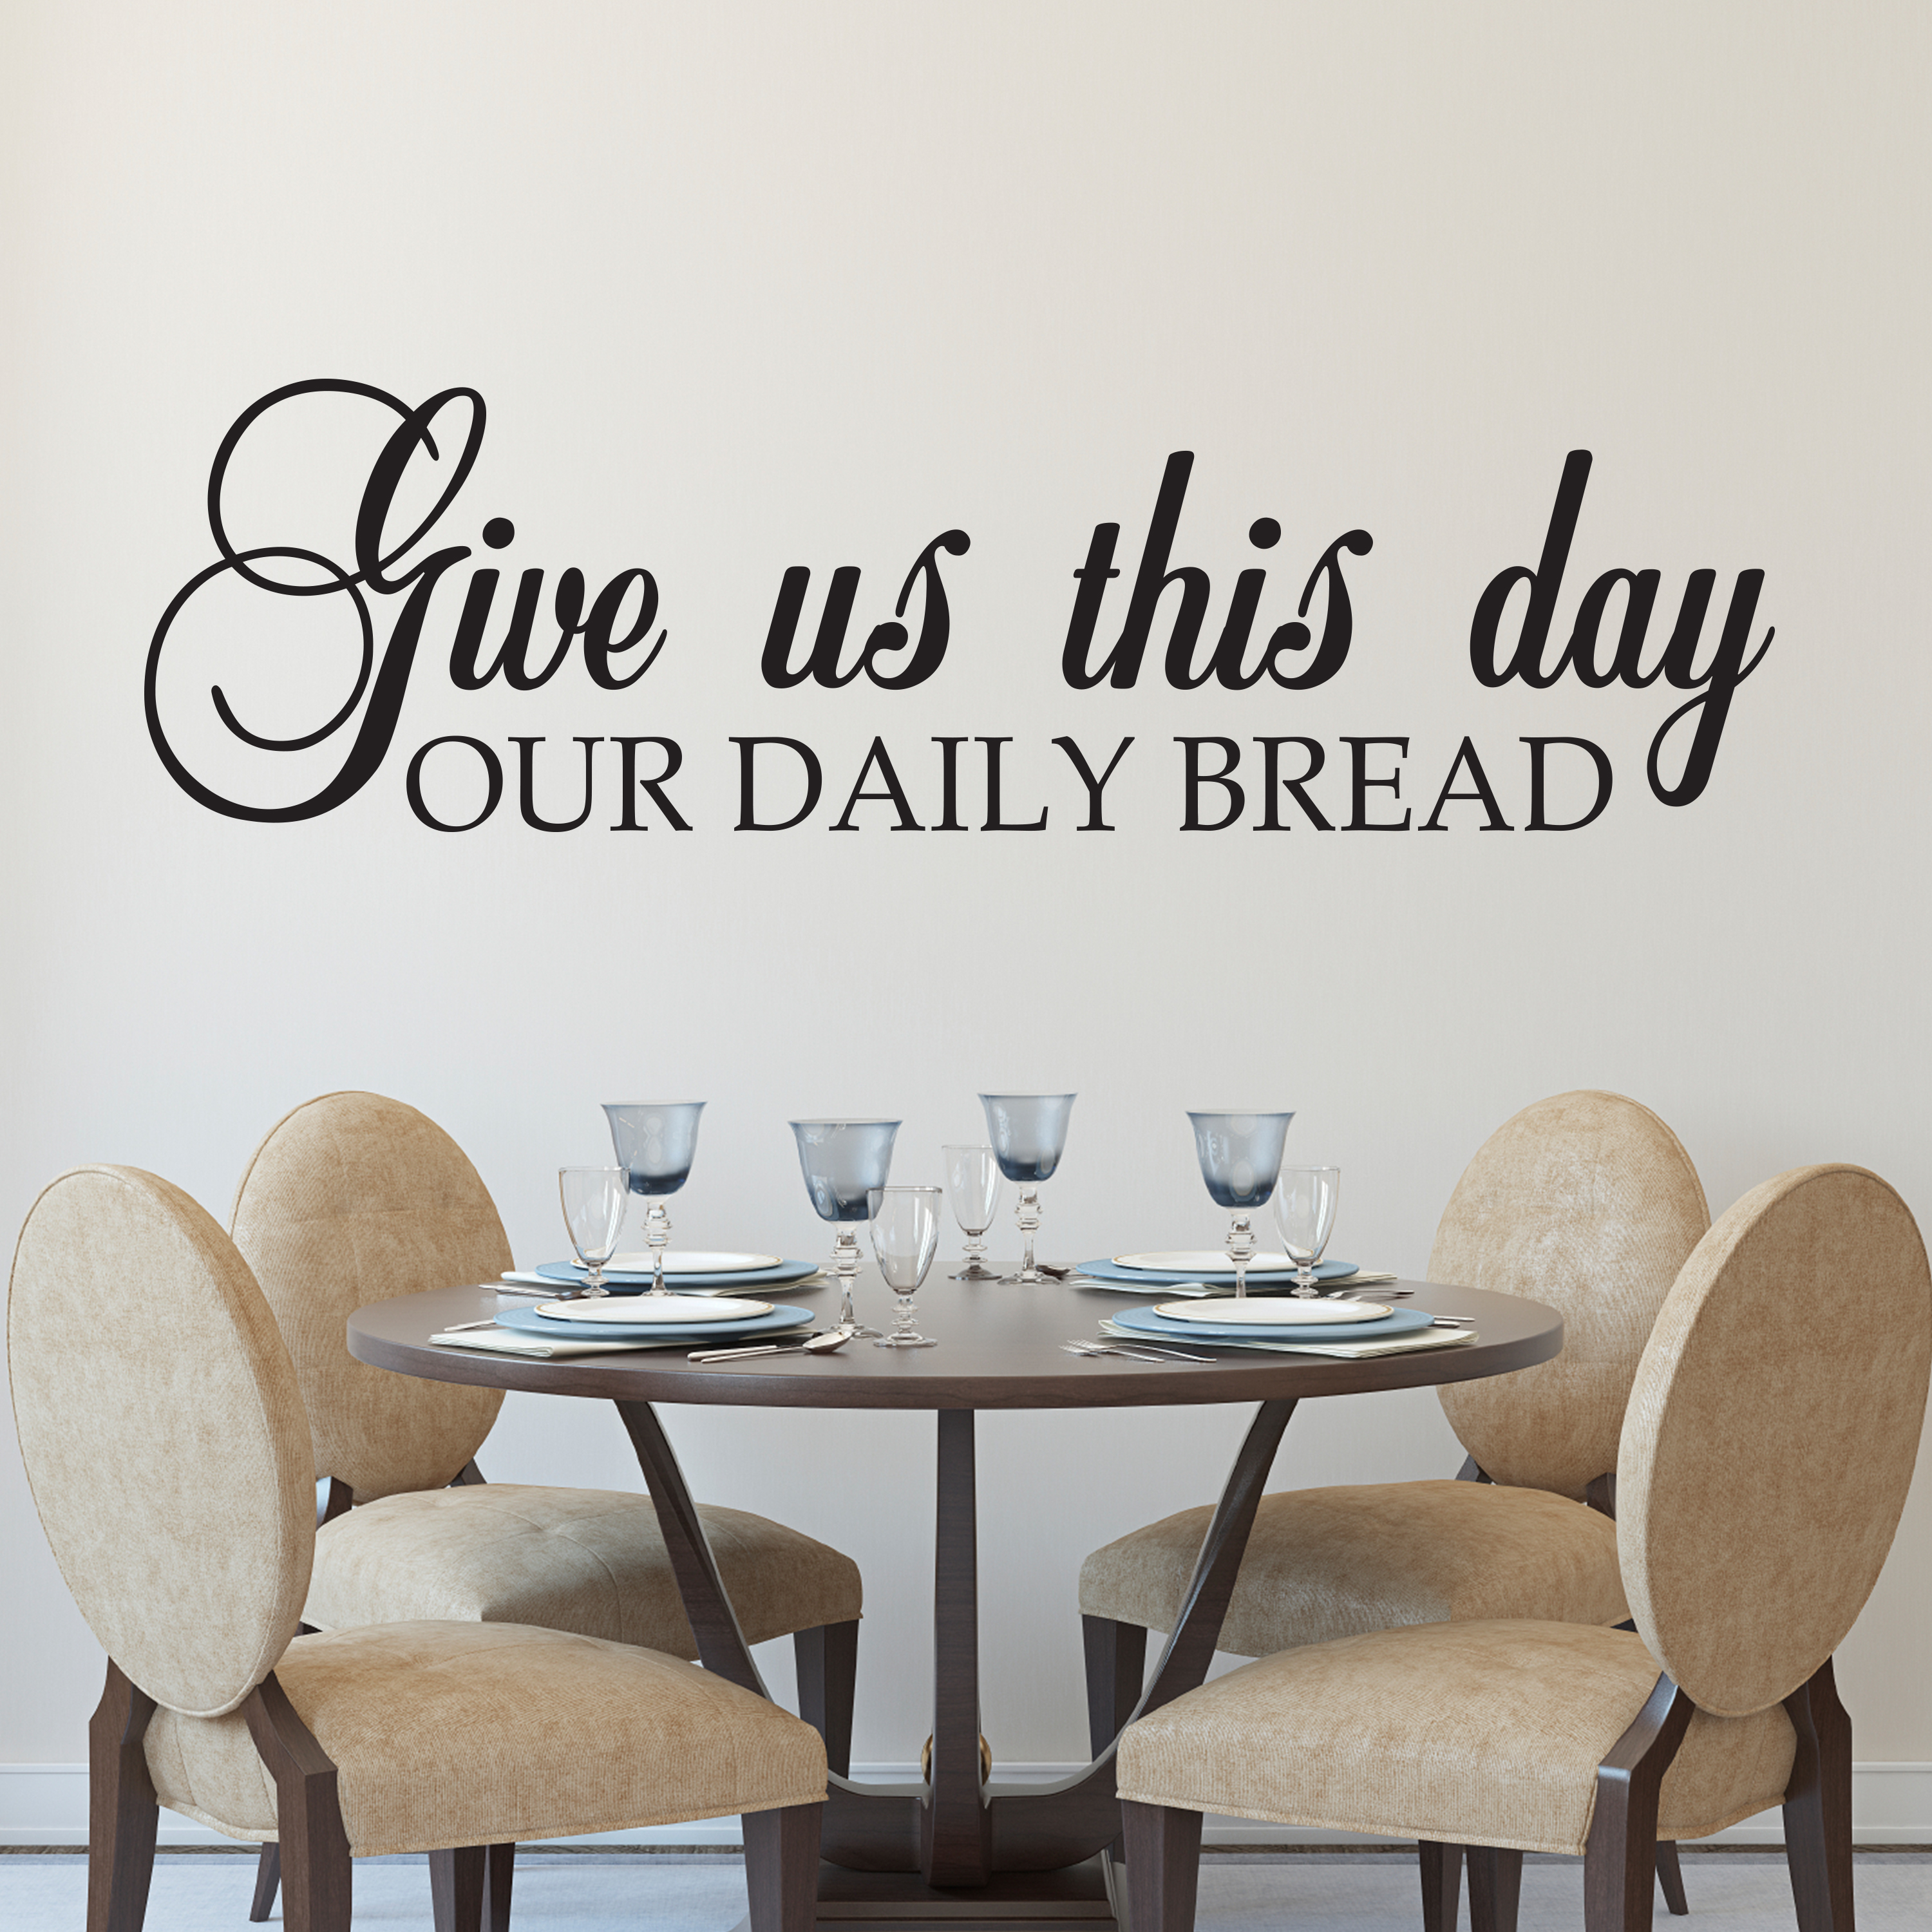 Kitchen Blessing Wall Decor: Give Us This Day Our Daily Bread Vinyl Wall Decal, Kitchen